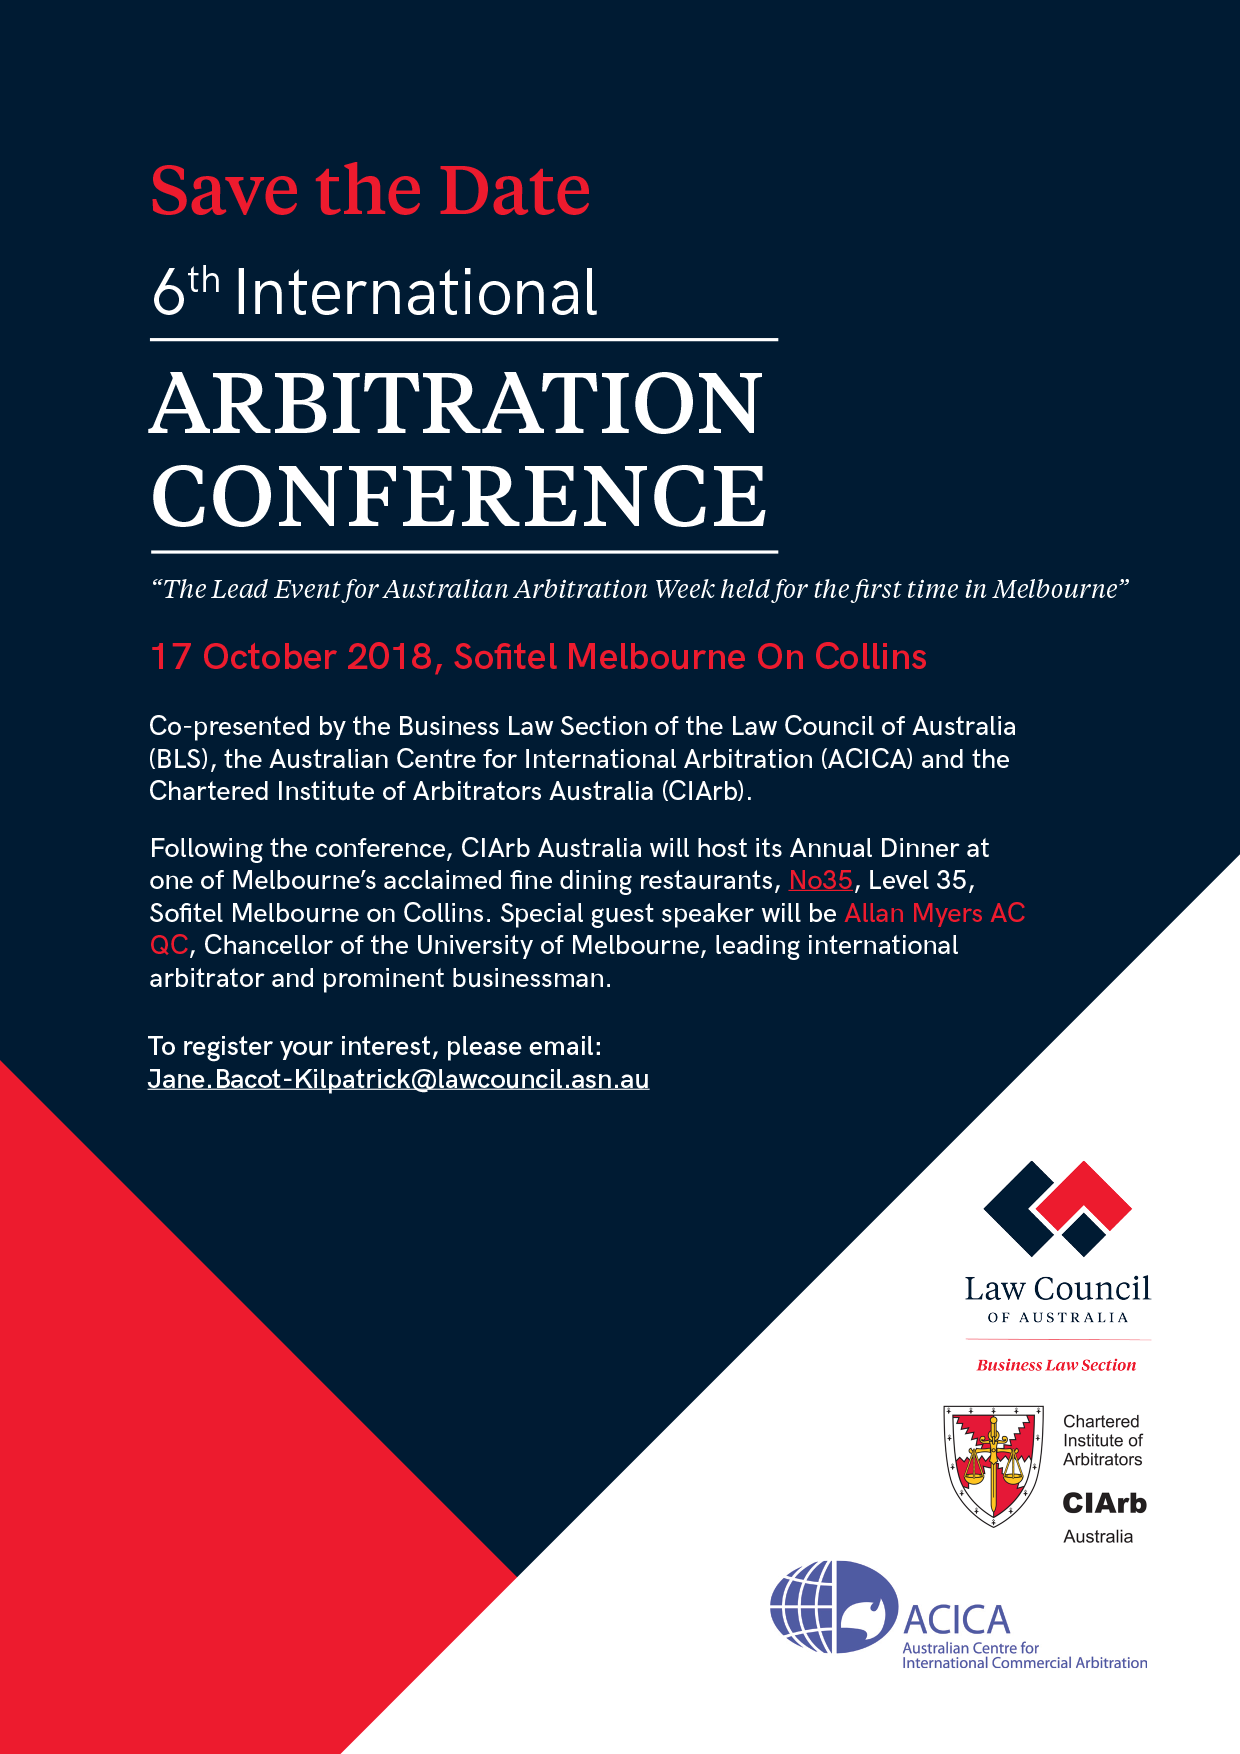 Arbitration-Conference-Save-the-Date